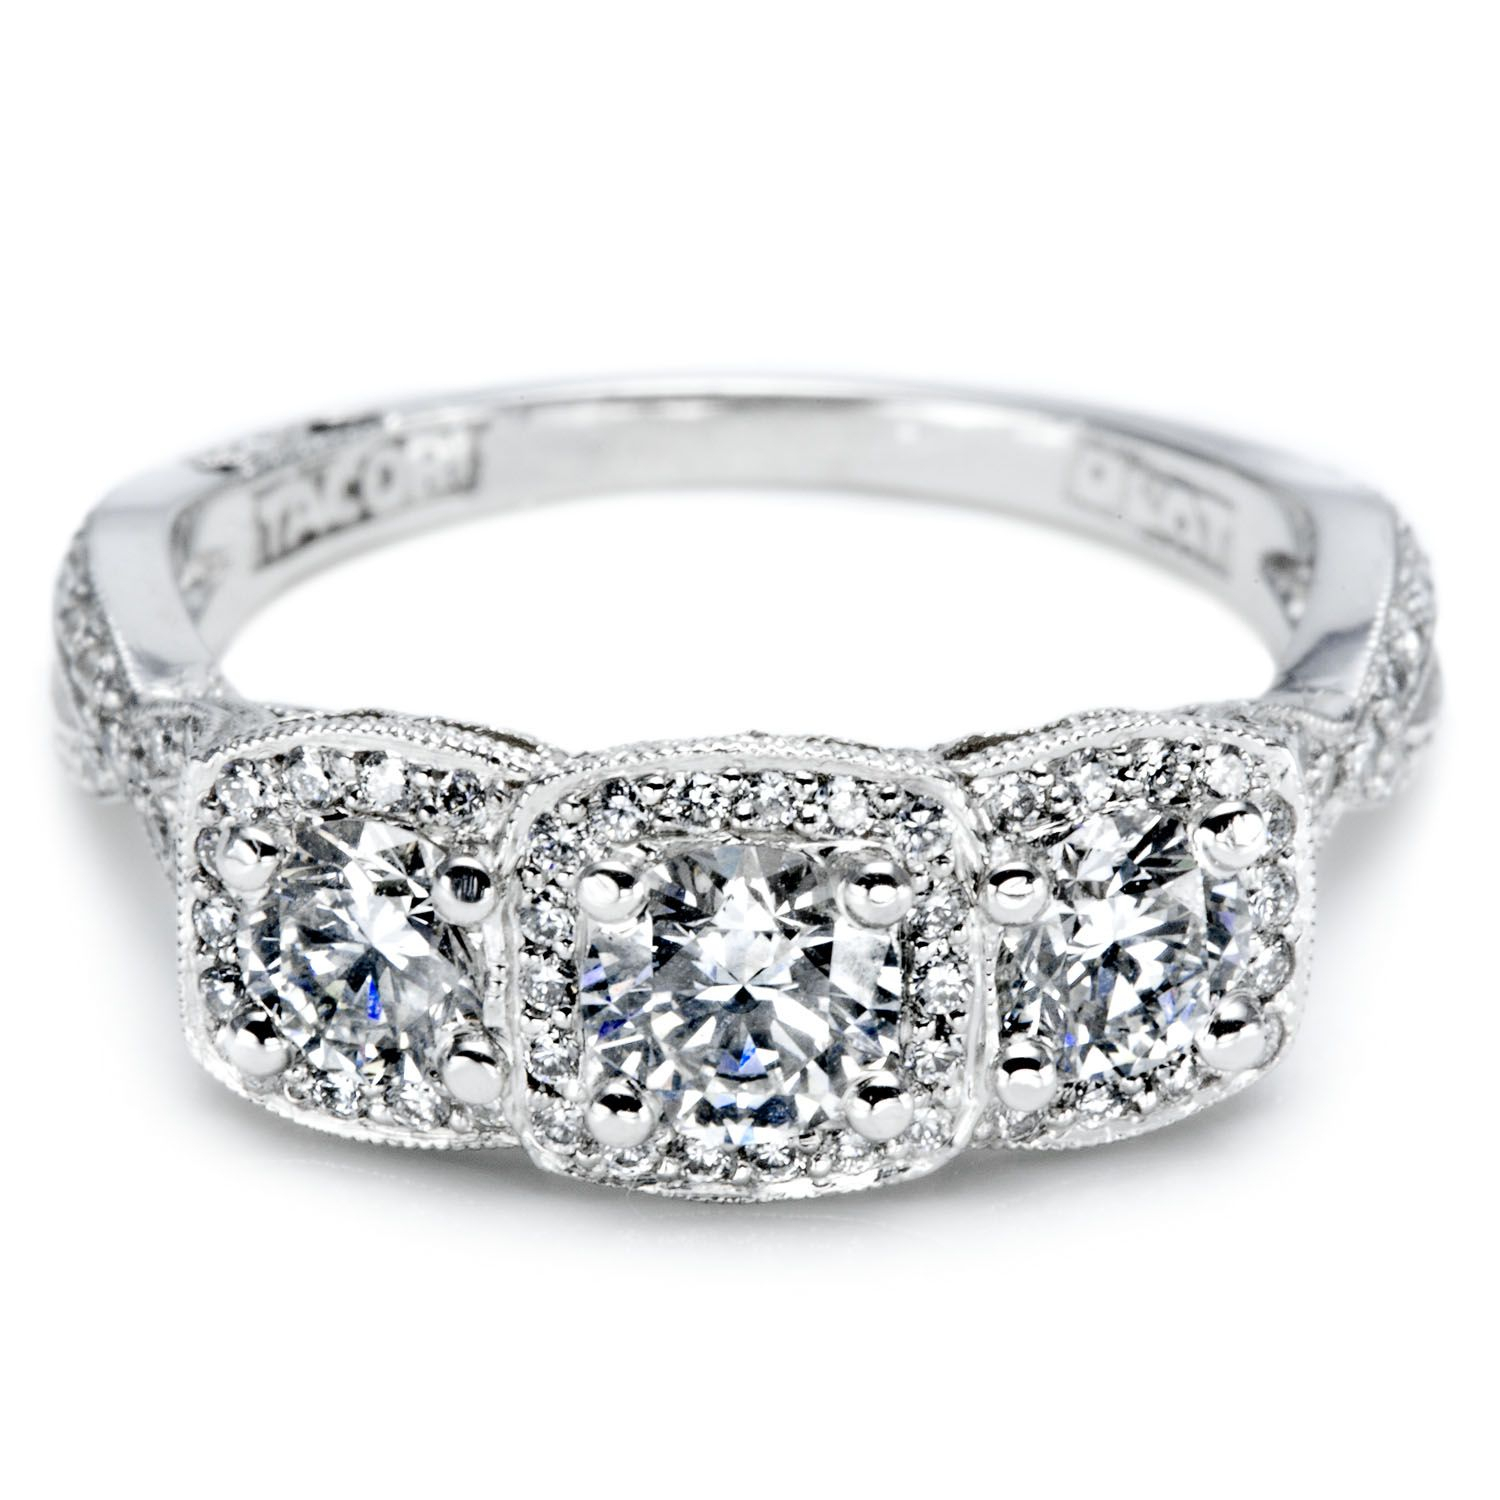 Unique Diamond Anniversary Rings | View Some Examples Of For Most Recently Released Enhanced Black And White Diamond Vintage Style Anniversary Bands In Sterling Silver (Gallery 6 of 25)